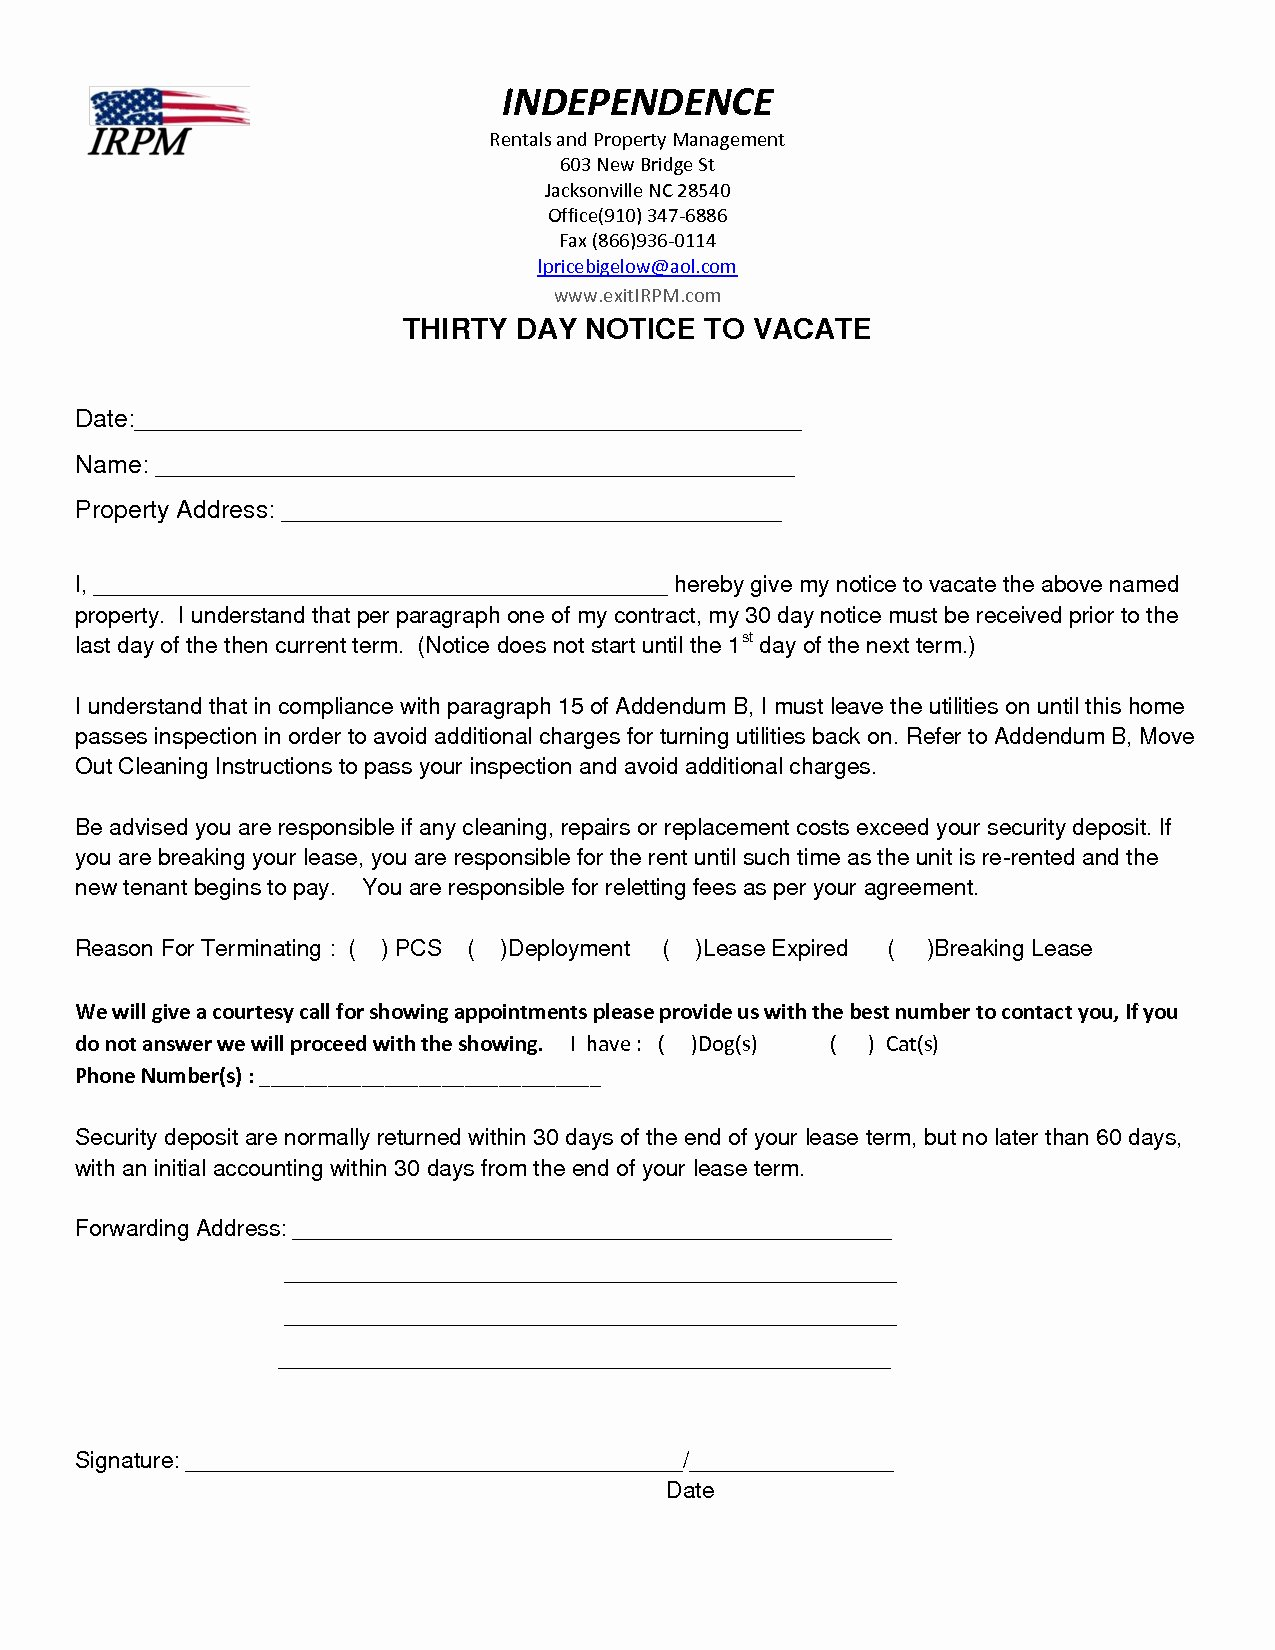 Move Out Letter Template Beautiful Notice to Vacate Apartment Letter Template Samples